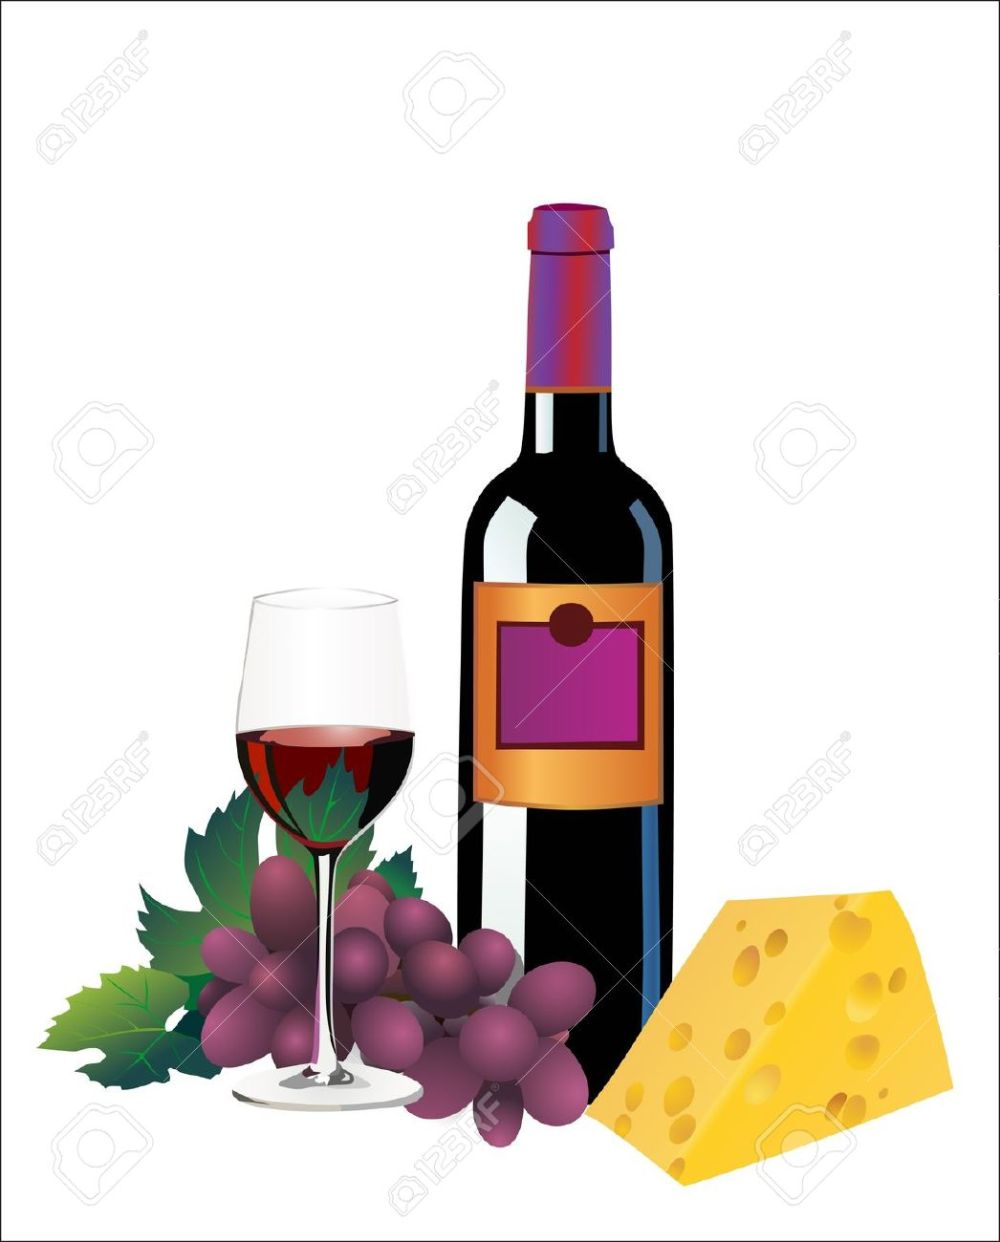 medium resolution of 26 wine and cheese party free clip art